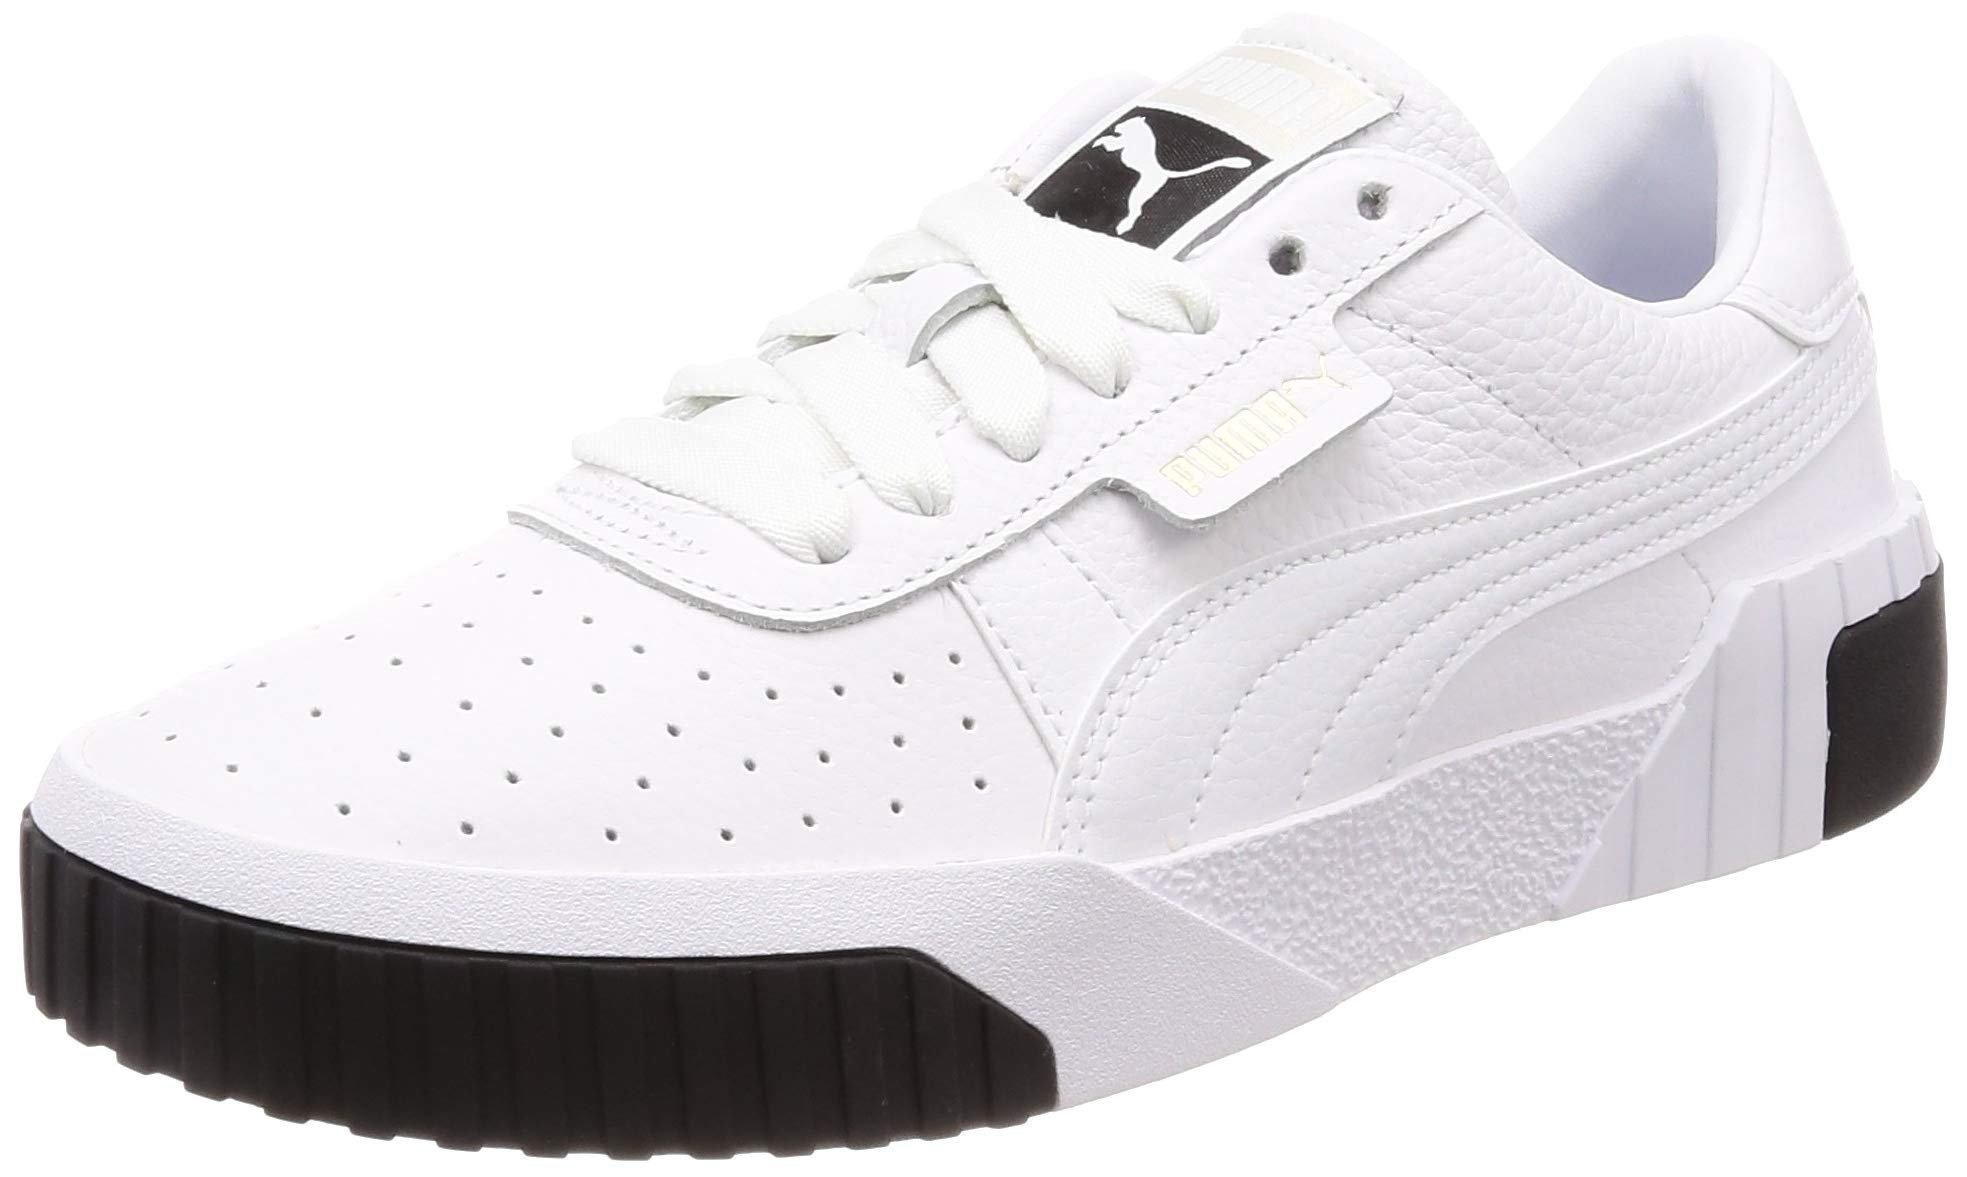 f5f78d51be Black Eu Blanc Puma Femme Cali 04 Wn's Basses Baskets 36 white nq0vwF